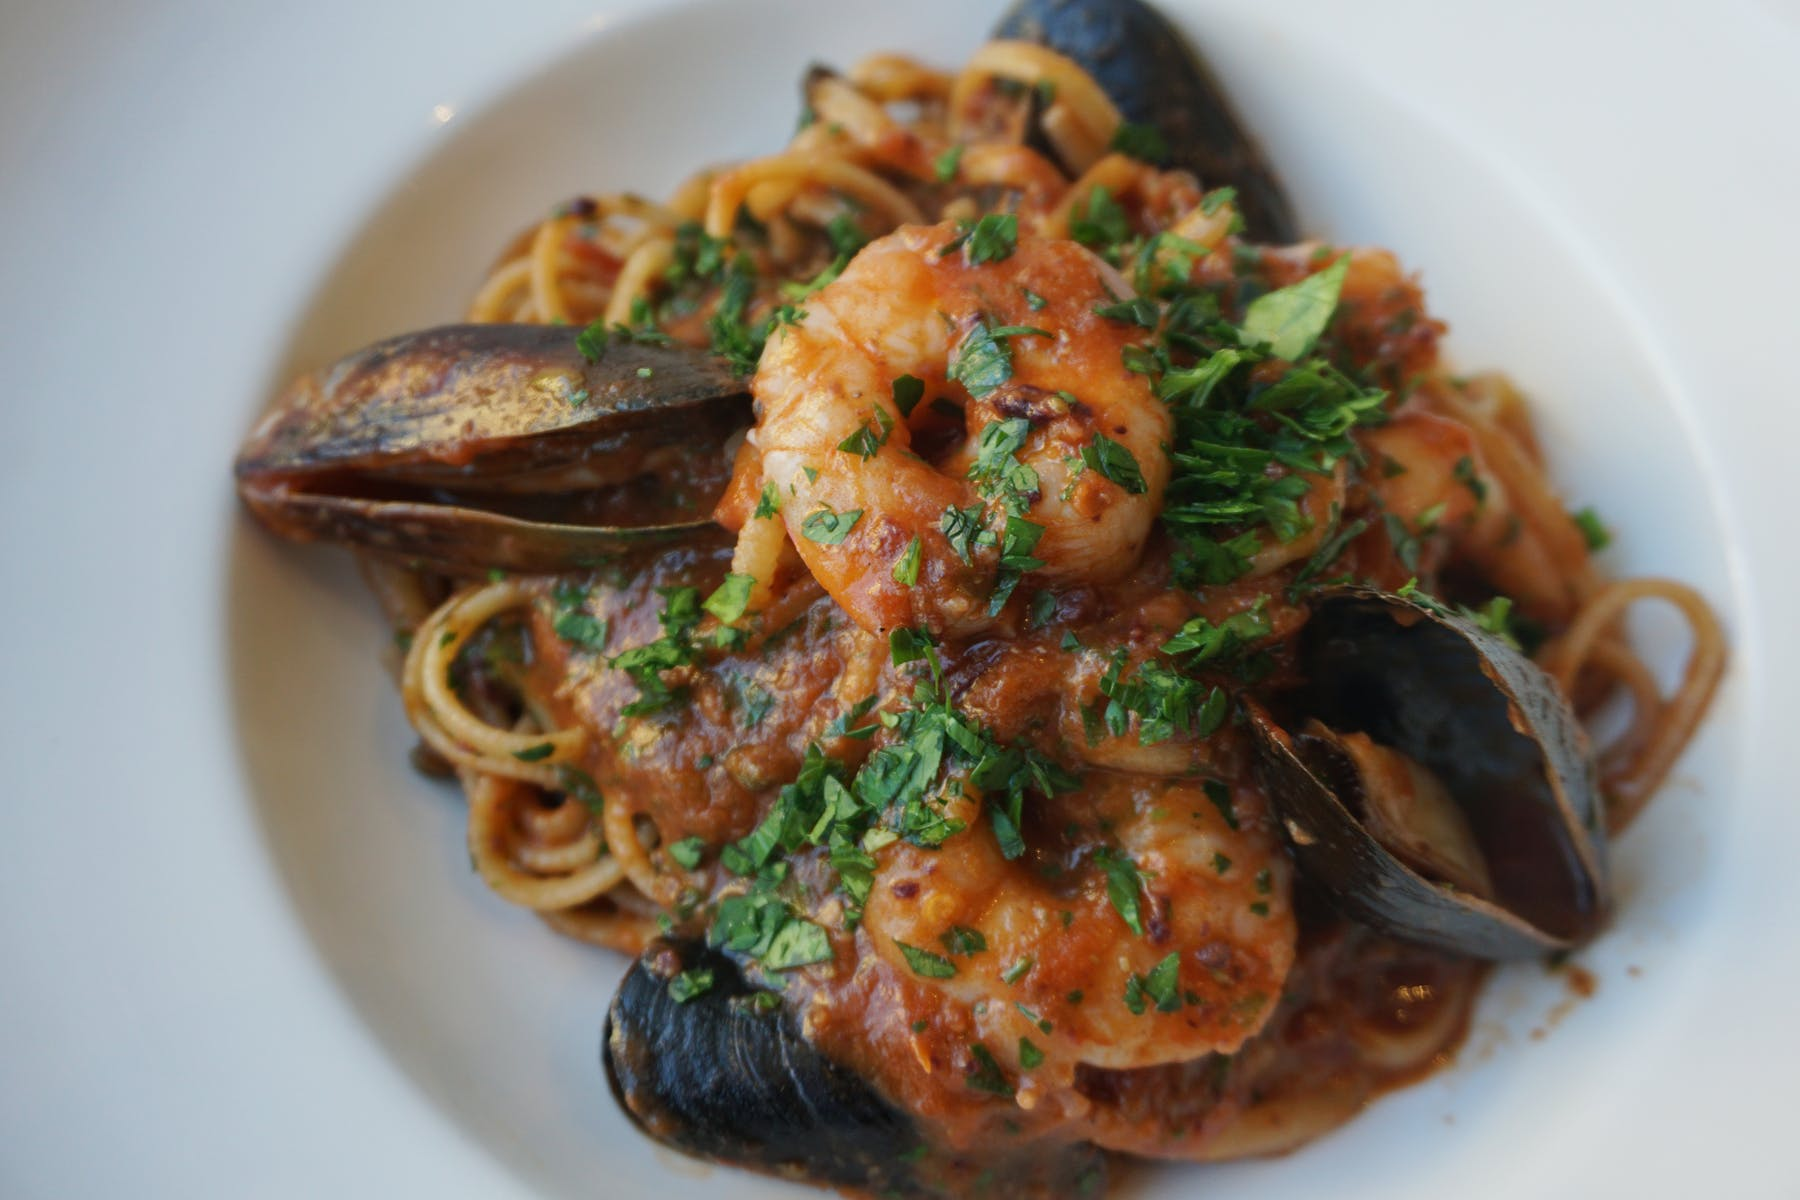 pasta with mussels and shrimps